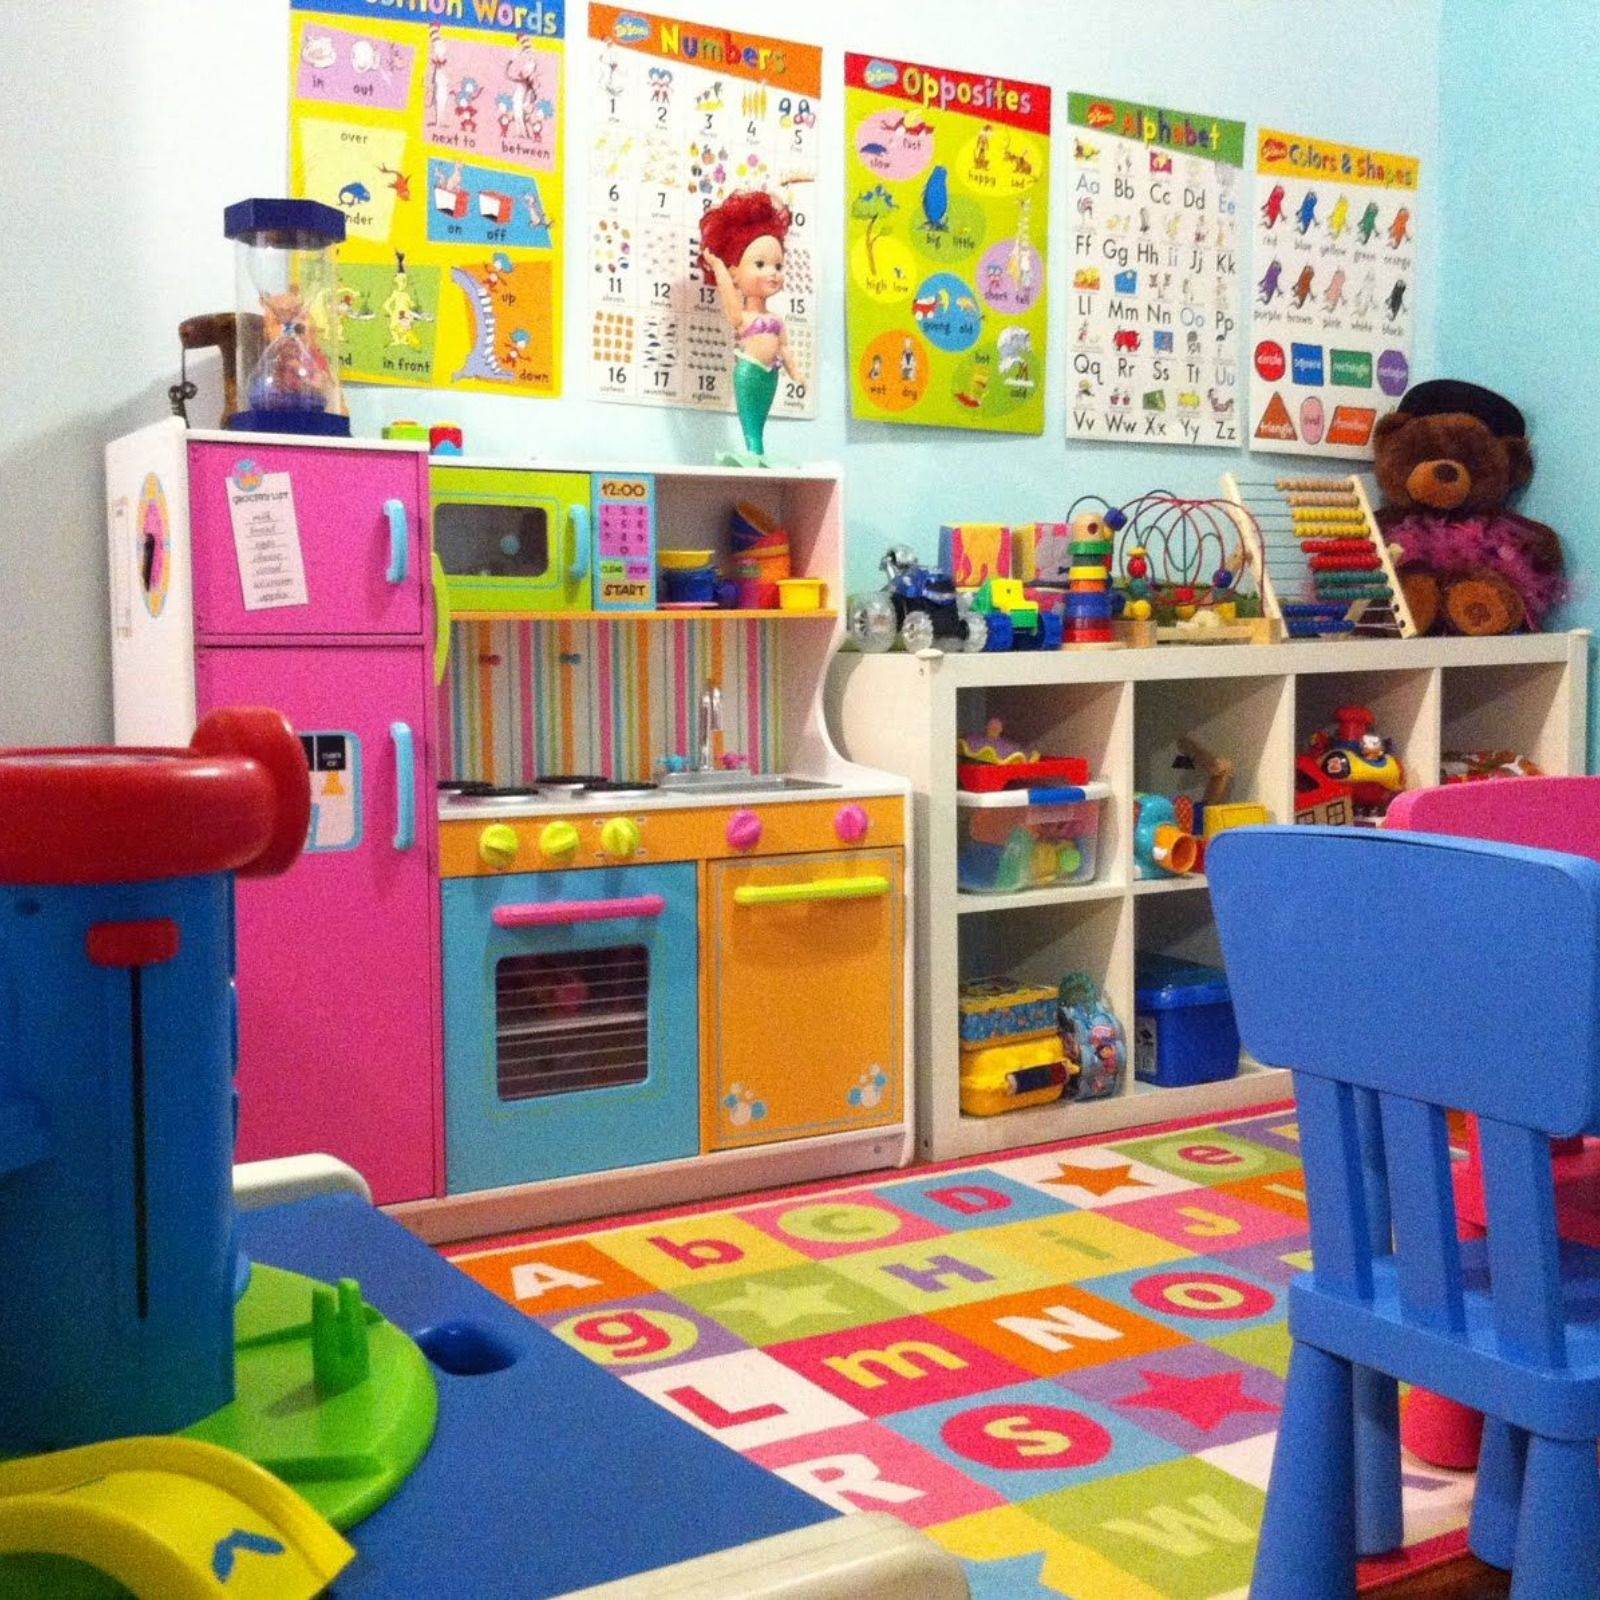 Pin By Tamesha On TeeTee's Daycare Designs (With Images